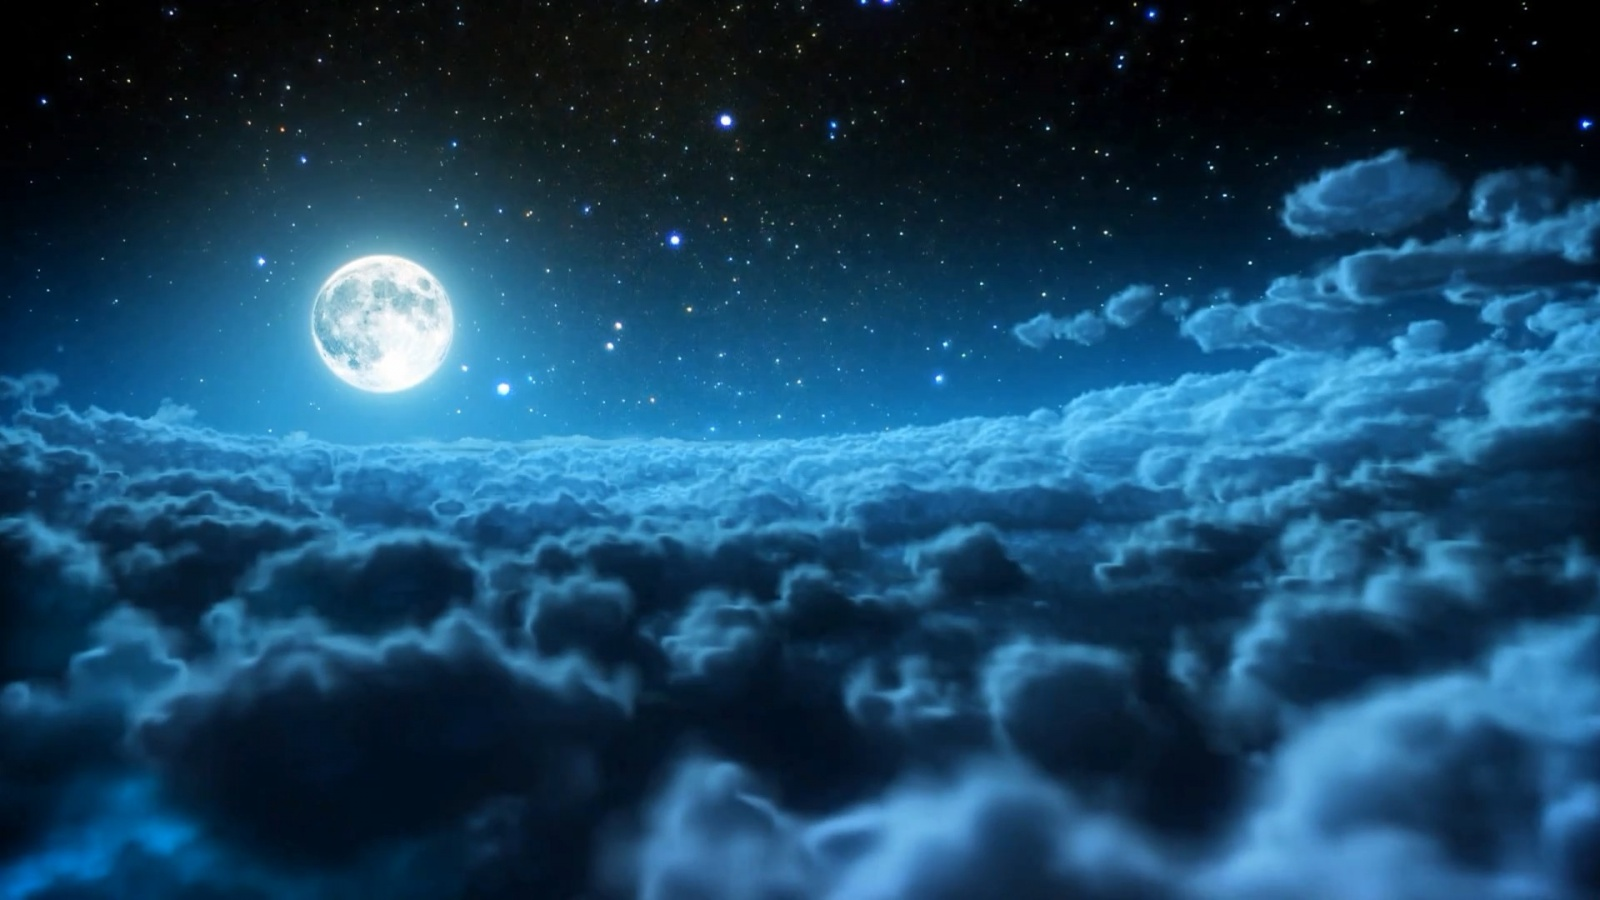 Beauty Night Sky With Moon Important Wallpapers 1600x900